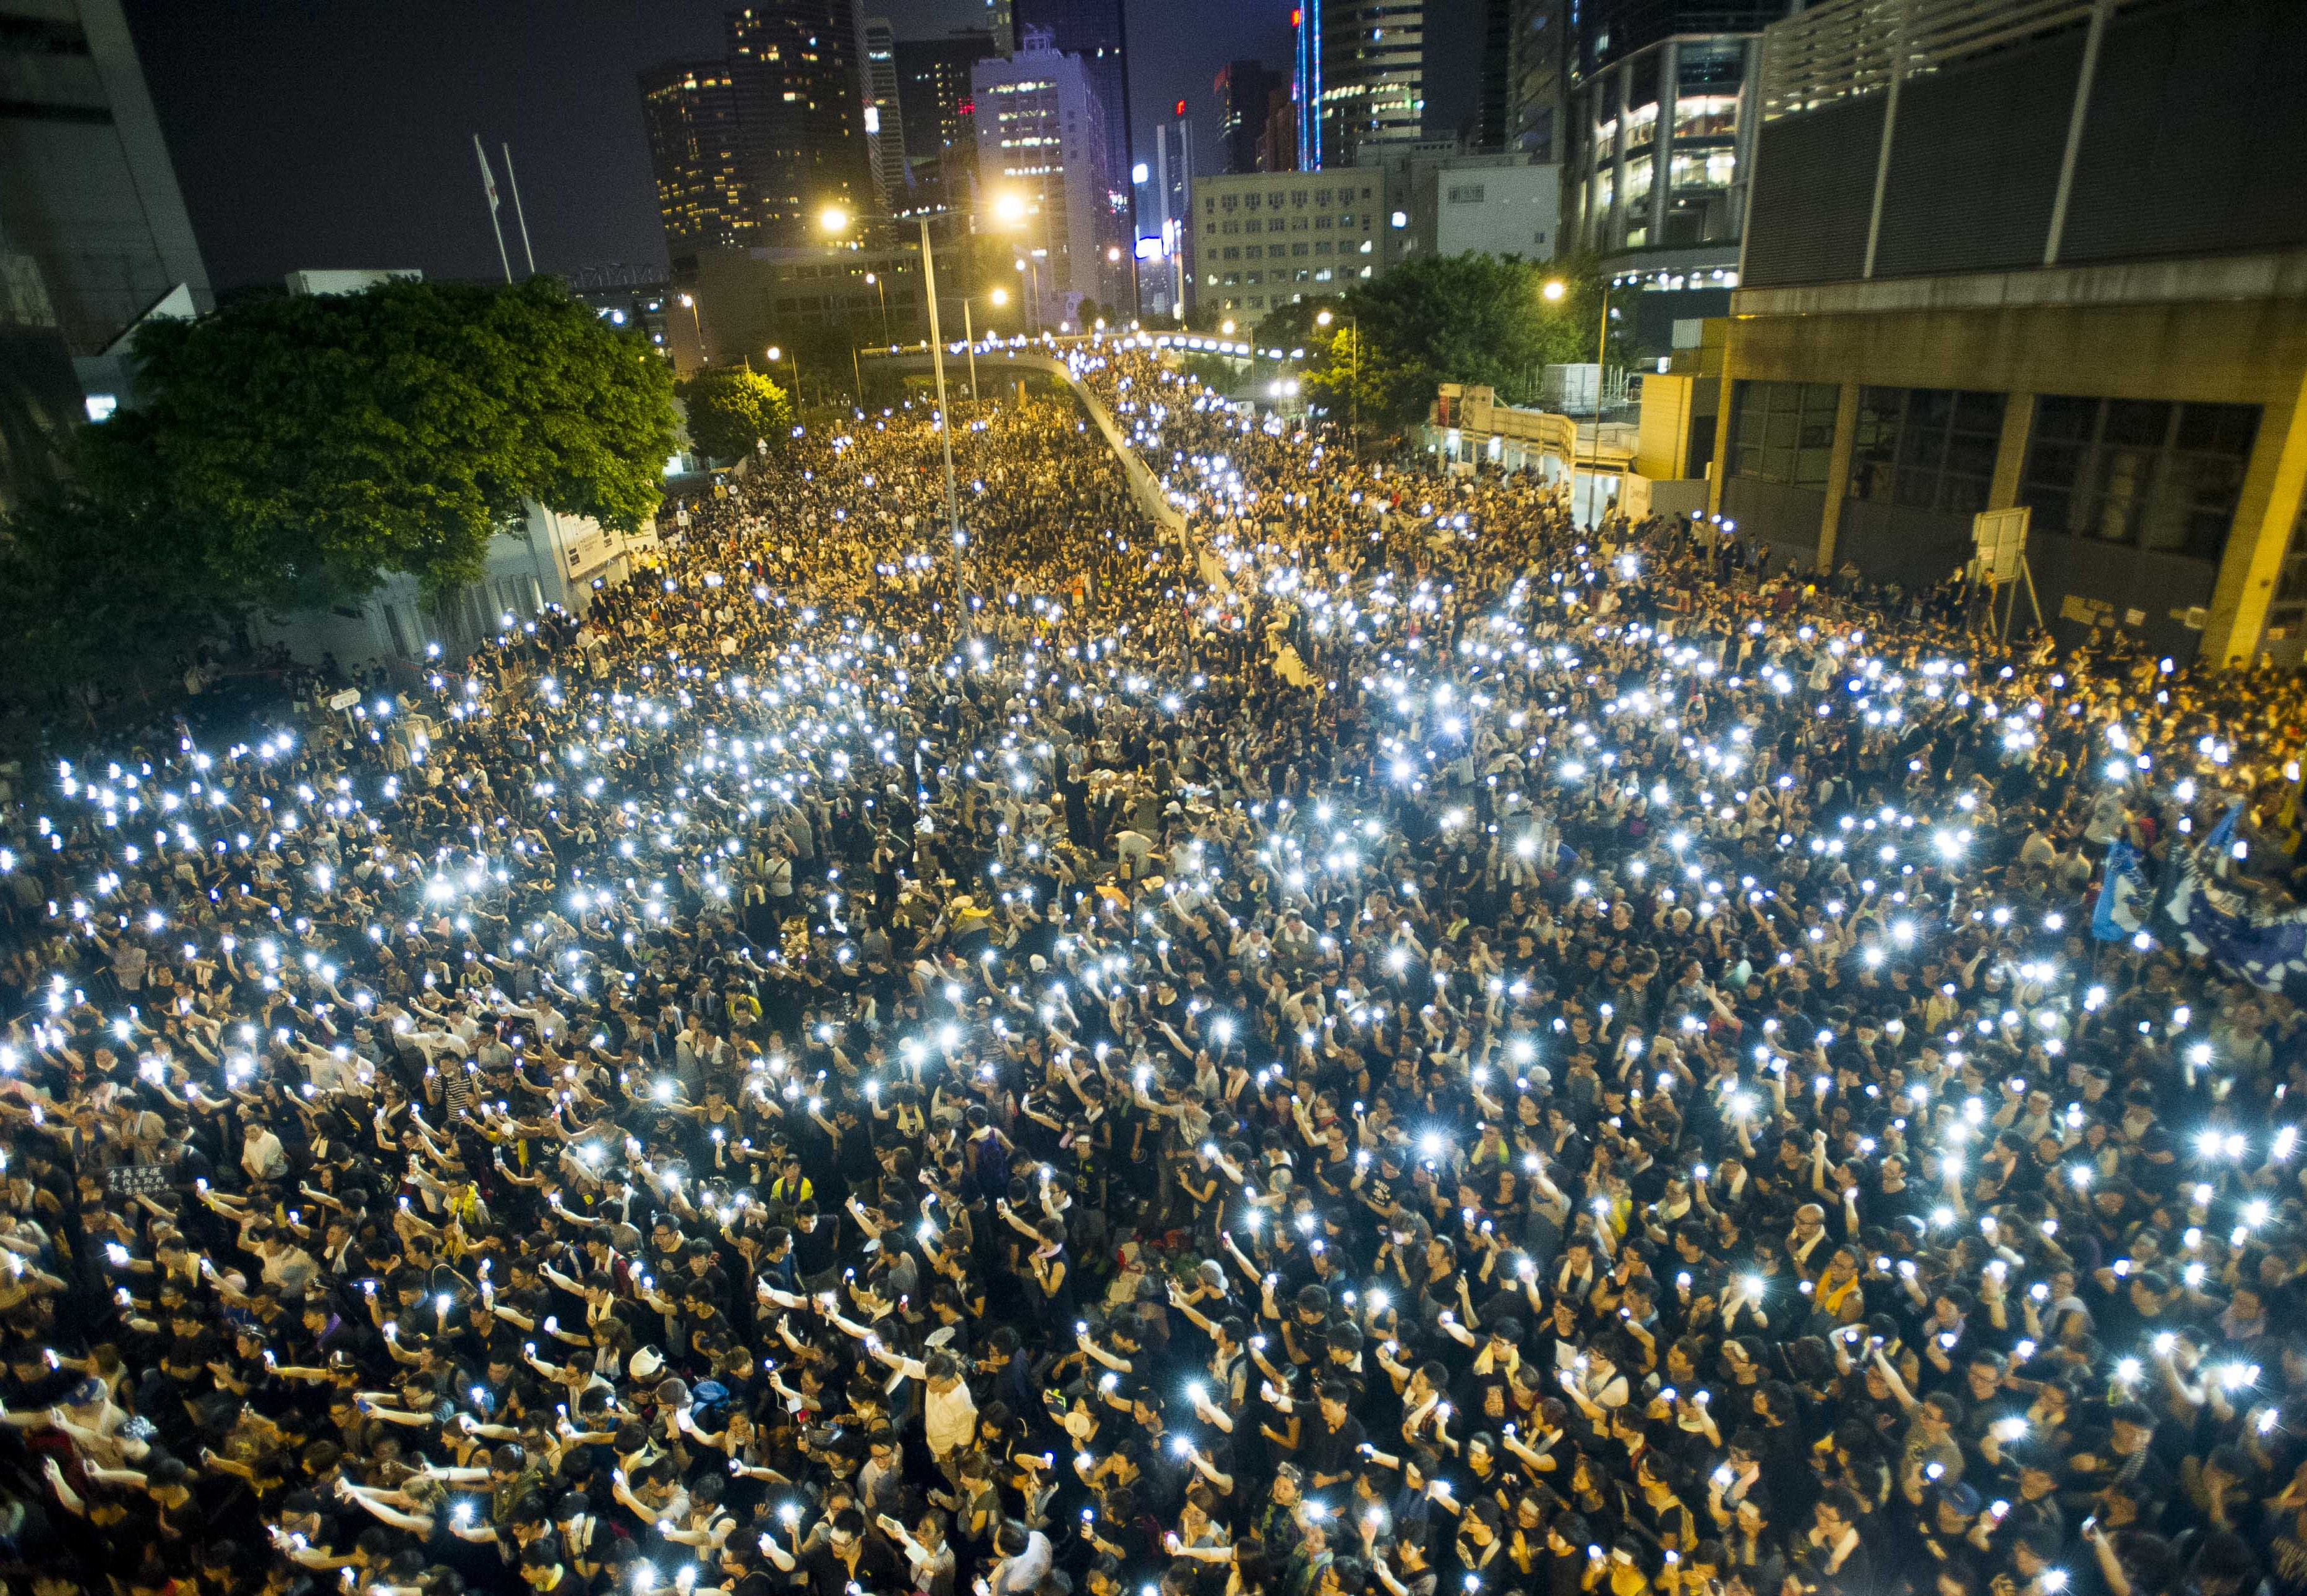 Protestors and student demonstrators hold up their cell phones in a display of solidarity during a protest outside the headquarters of Legislative Council in Hong Kong on Sept. 29, 2014